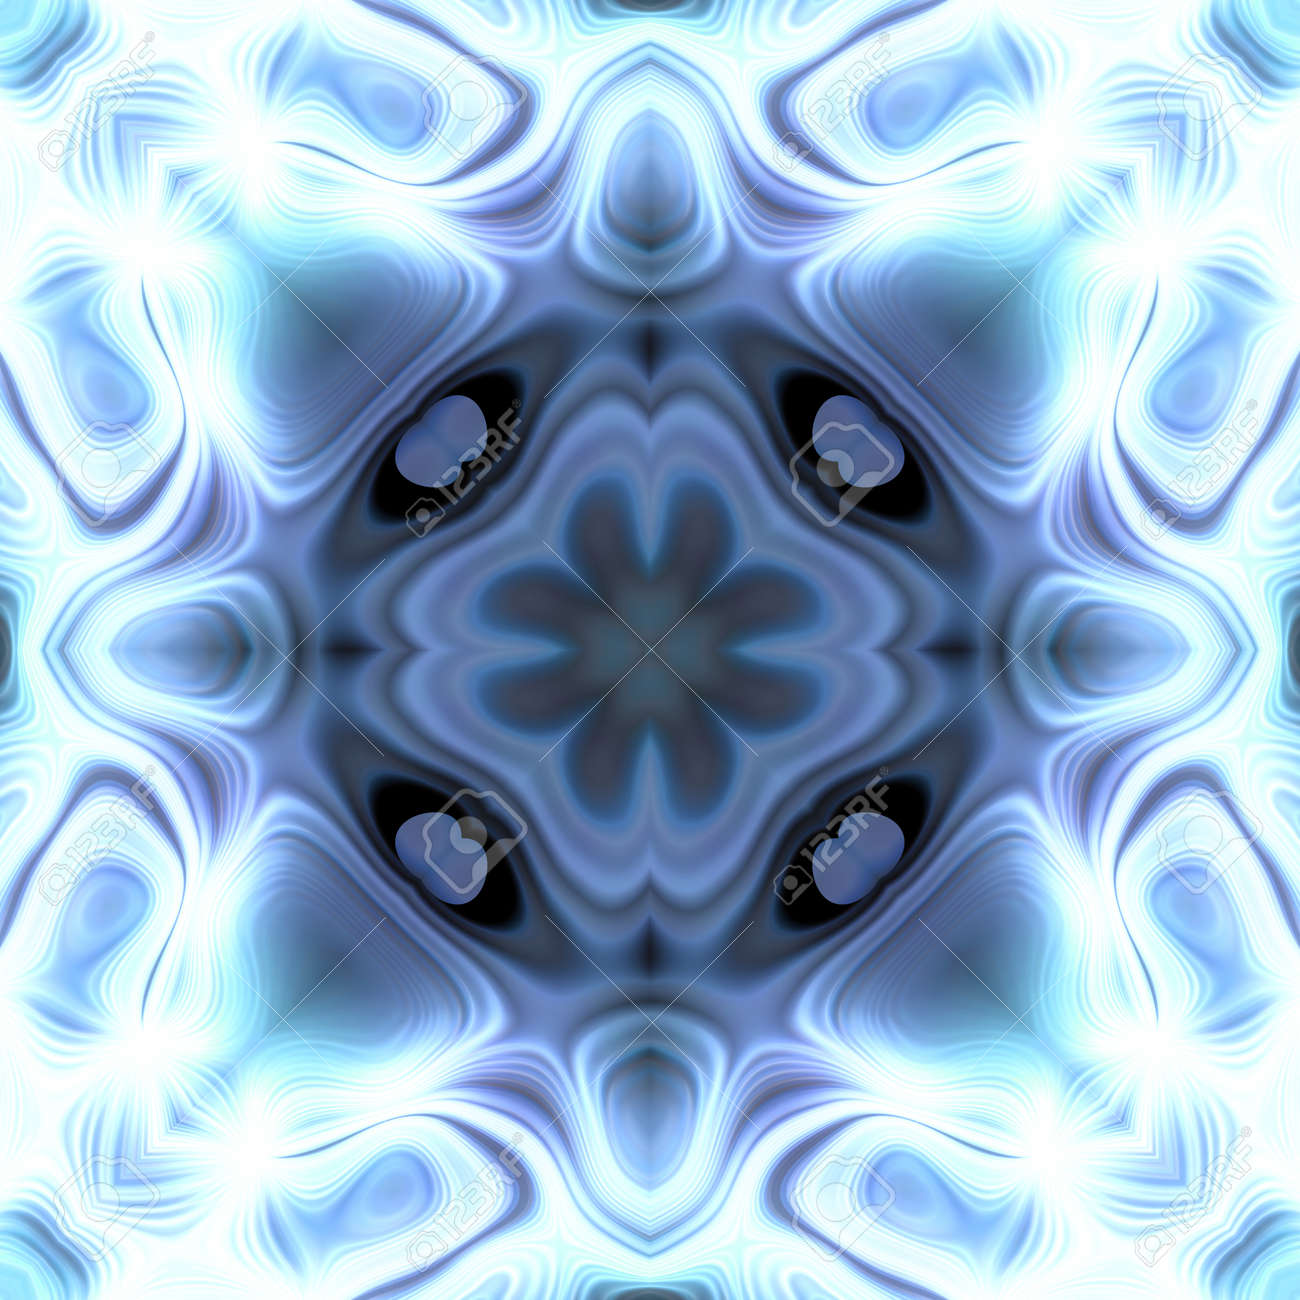 Kaleidoscopic Wallpaper Tiles. Background Or Texture(You Can.. Stock ...